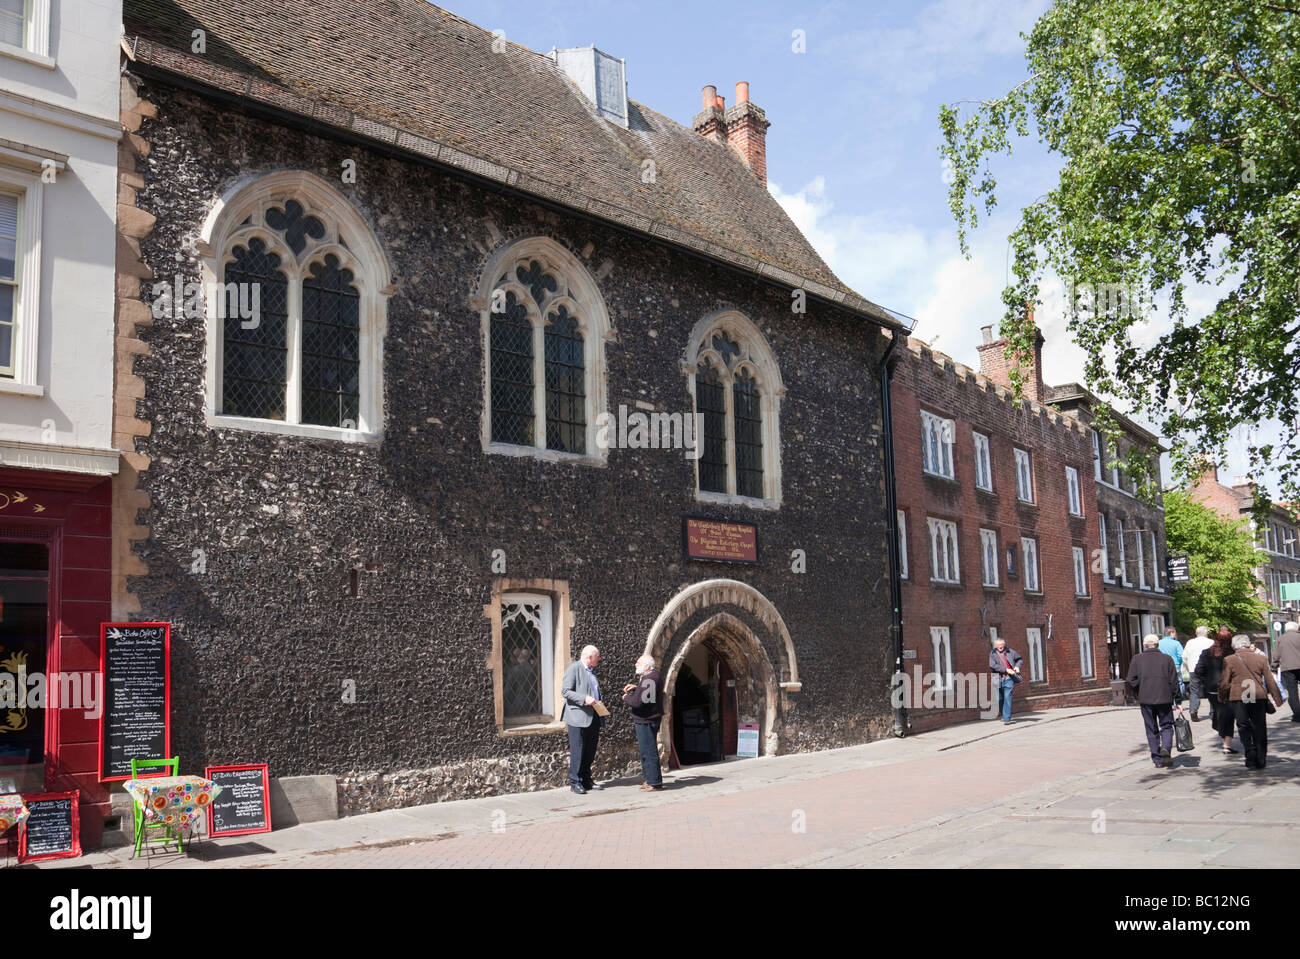 Canterbury Kent England UK Europe 12th century Pilgrim s Hospital of St Thomas built in 1176 in the city centre - Stock Image